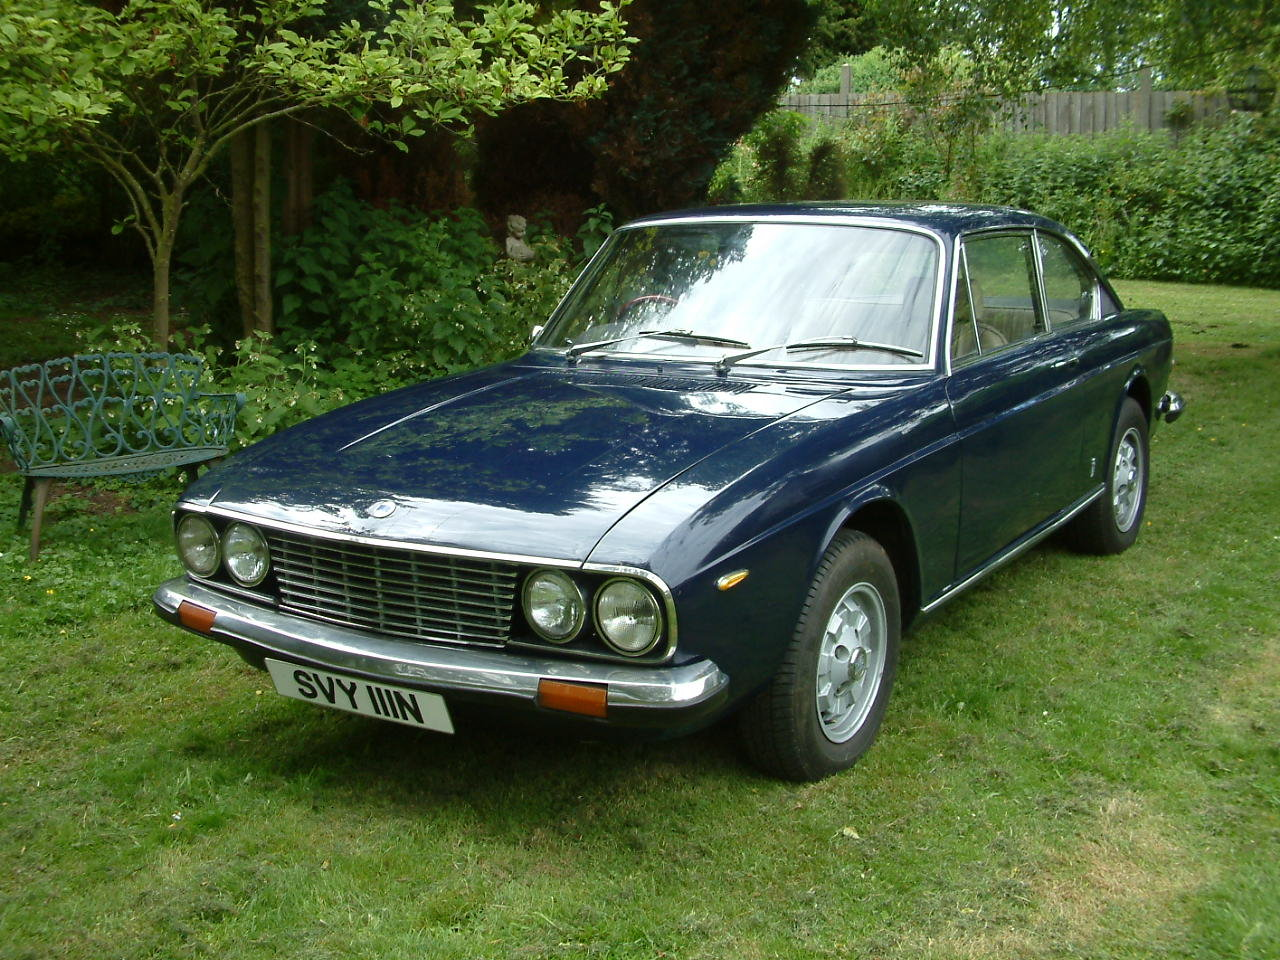 1974 Lancia 2000 coupe Pininfarina restored For Sale (picture 1 of 6)